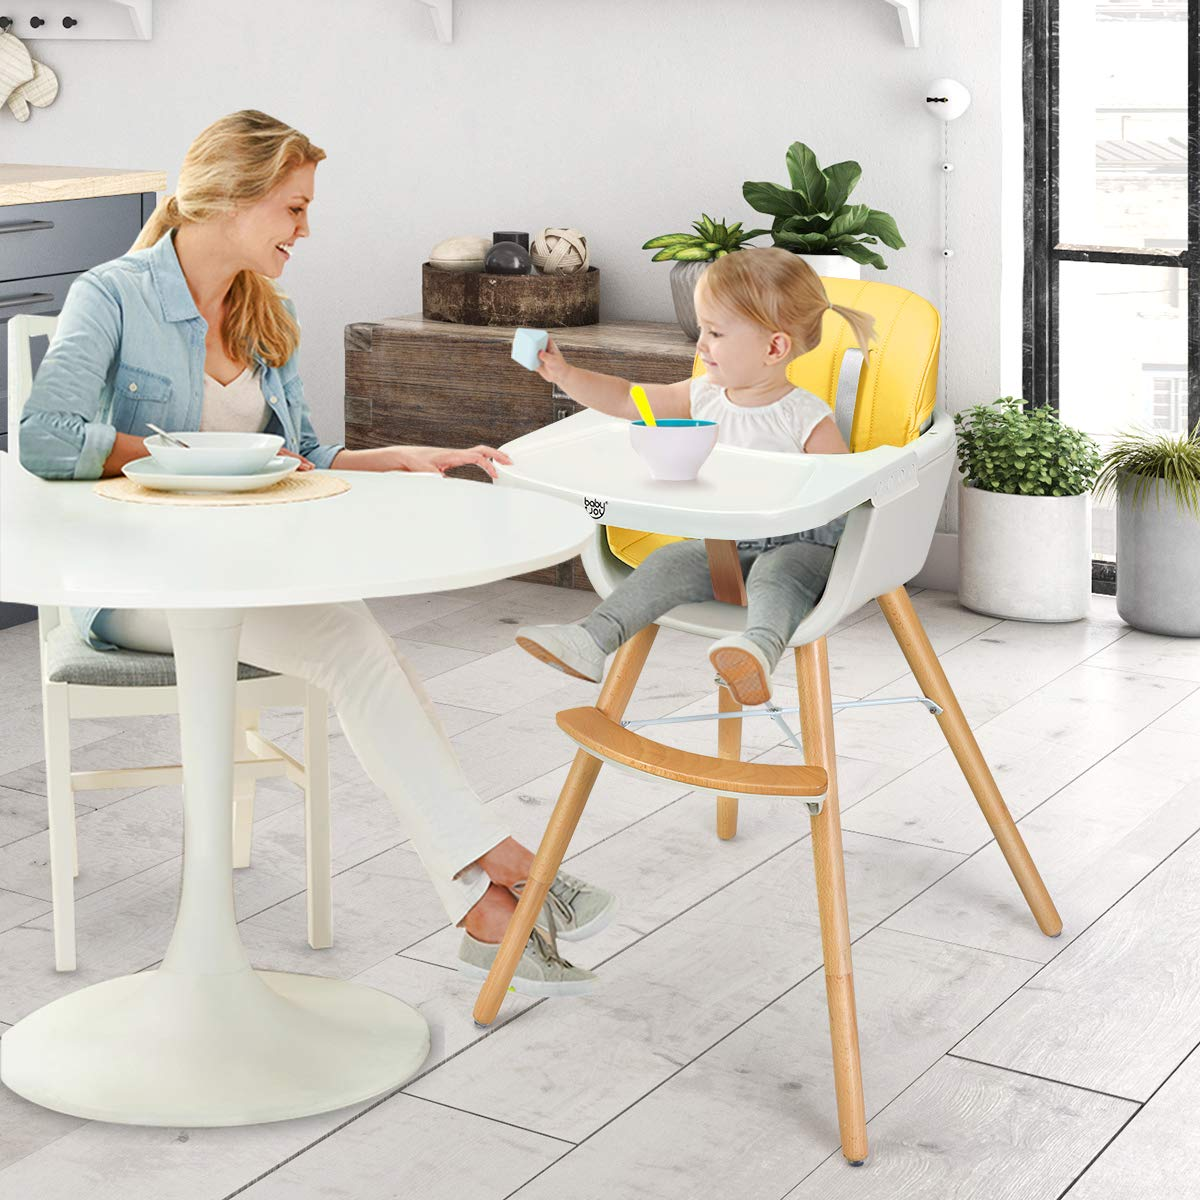 BABY JOY Convertible High Chair PU Cushion Wooden 3 in 1 Multi-Functional Highchair with Adjustable Legs 5-Point Seat Belt Adjustable Tray and Detachable Footrest for Baby and Infants Yellow